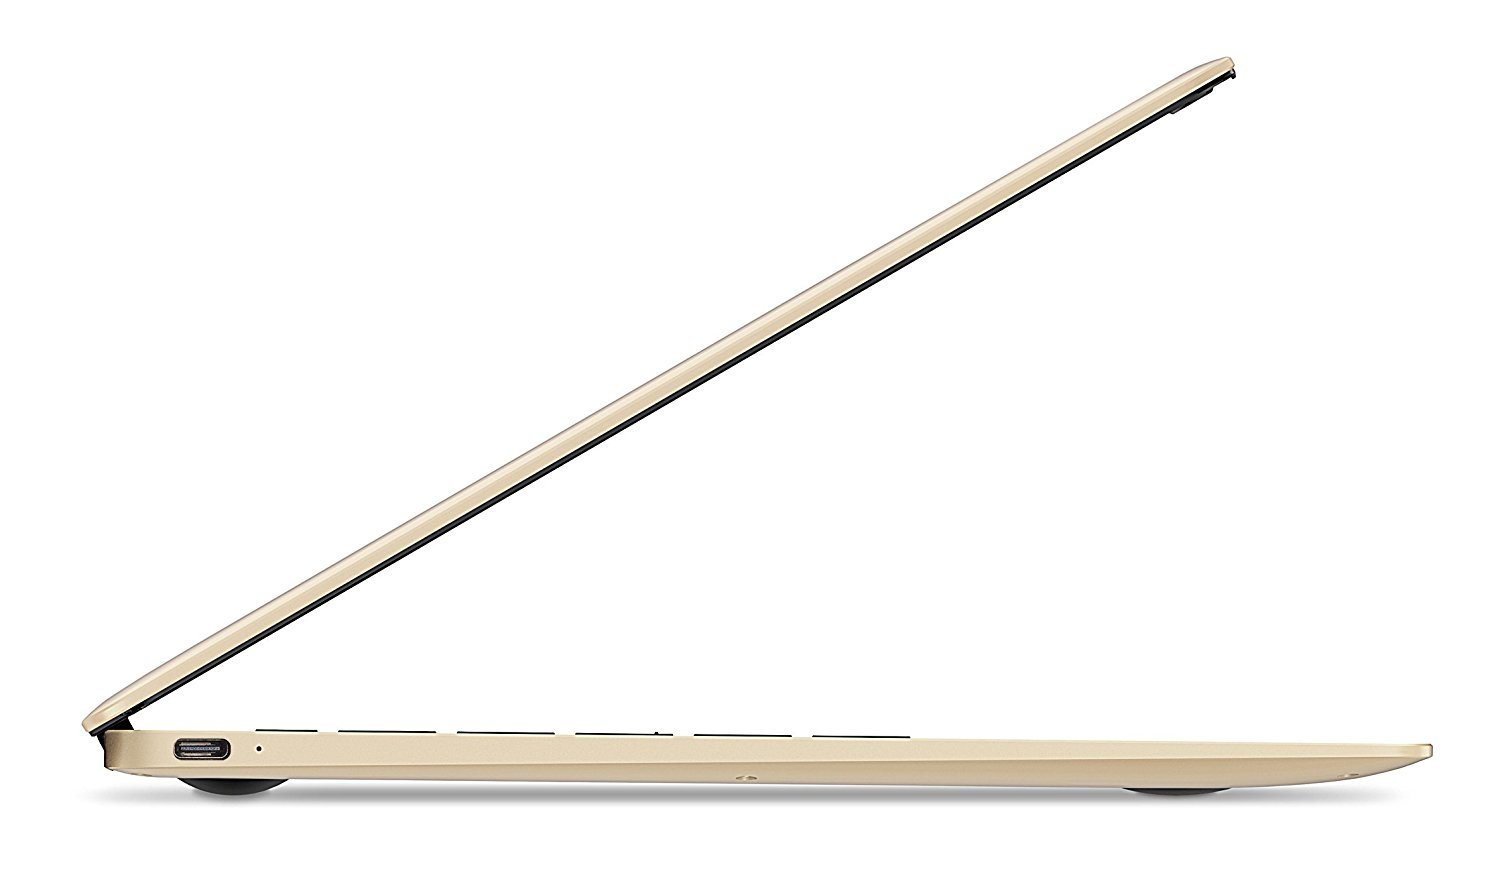 Odys-Winbook-13-3378-cm-133-Zoll-Ultrabook-Notebook